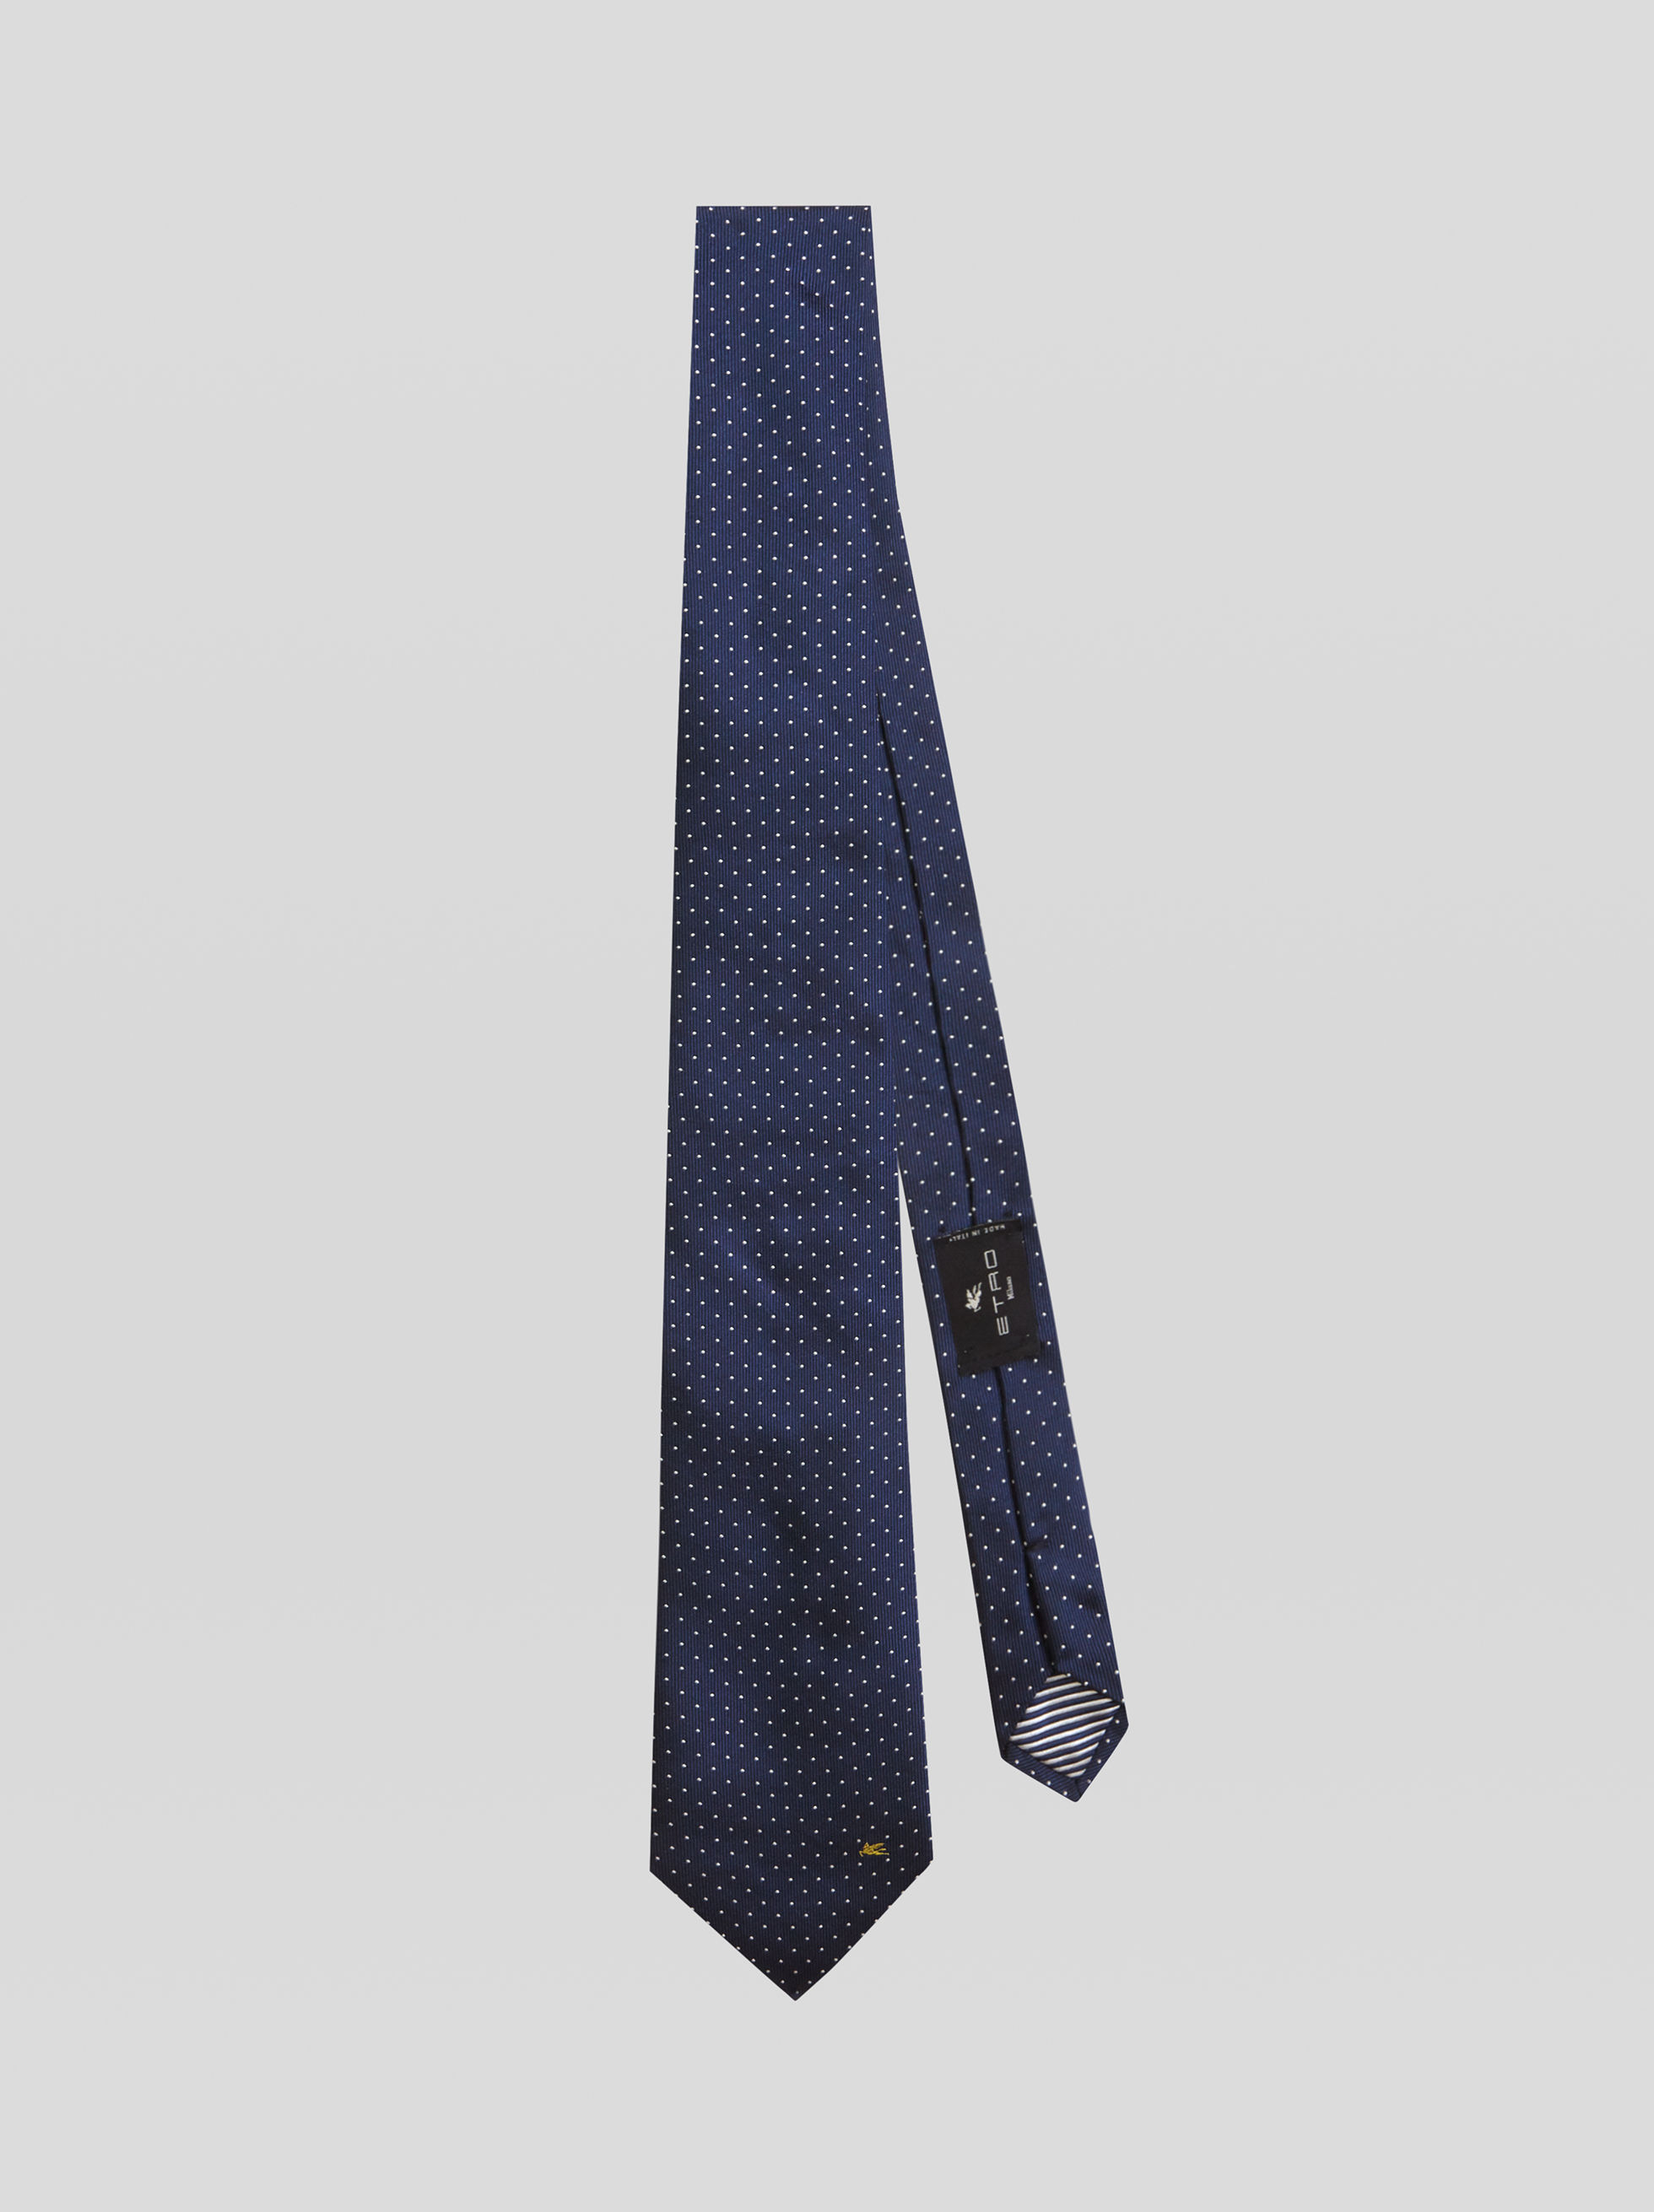 DOTTED JACQUARD TIE WITH PEGASO